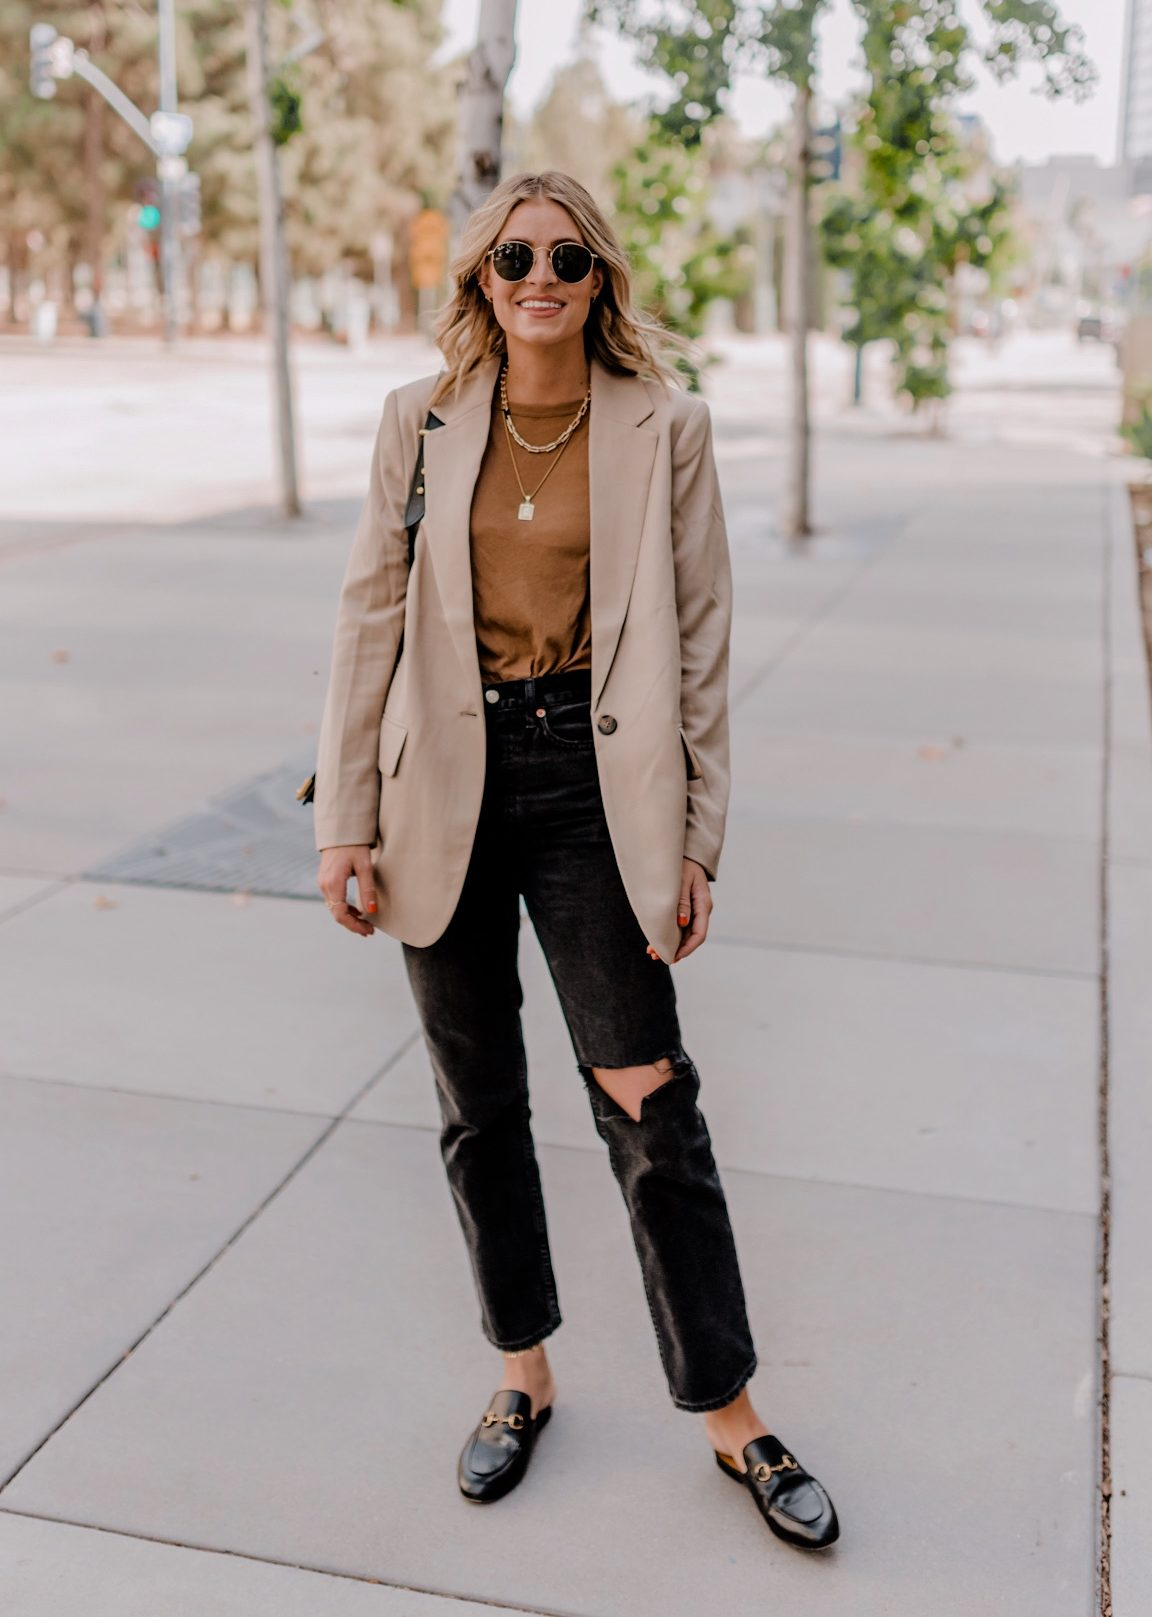 HIGH AND LOW FASHION favorites for Fall featured by top San Diego fashion blogger, Navy Grace. | Fashion Tips by popular San Diego fashion blog, Navy Grace: image a a woman standing outside and wearing a Nordstrom Single Breasted Girlfriend Blazer TOPSHOP, Nordstrom Chicago Ripped Knee High Waist Dad Jeans TOPSHOP, Everlane The Air Oversized Crew Tee, Nordstrom Princetown Loafer Mule, and Nordstrom Icons 50mm Round Metal Sunglasses RAY-BAN.